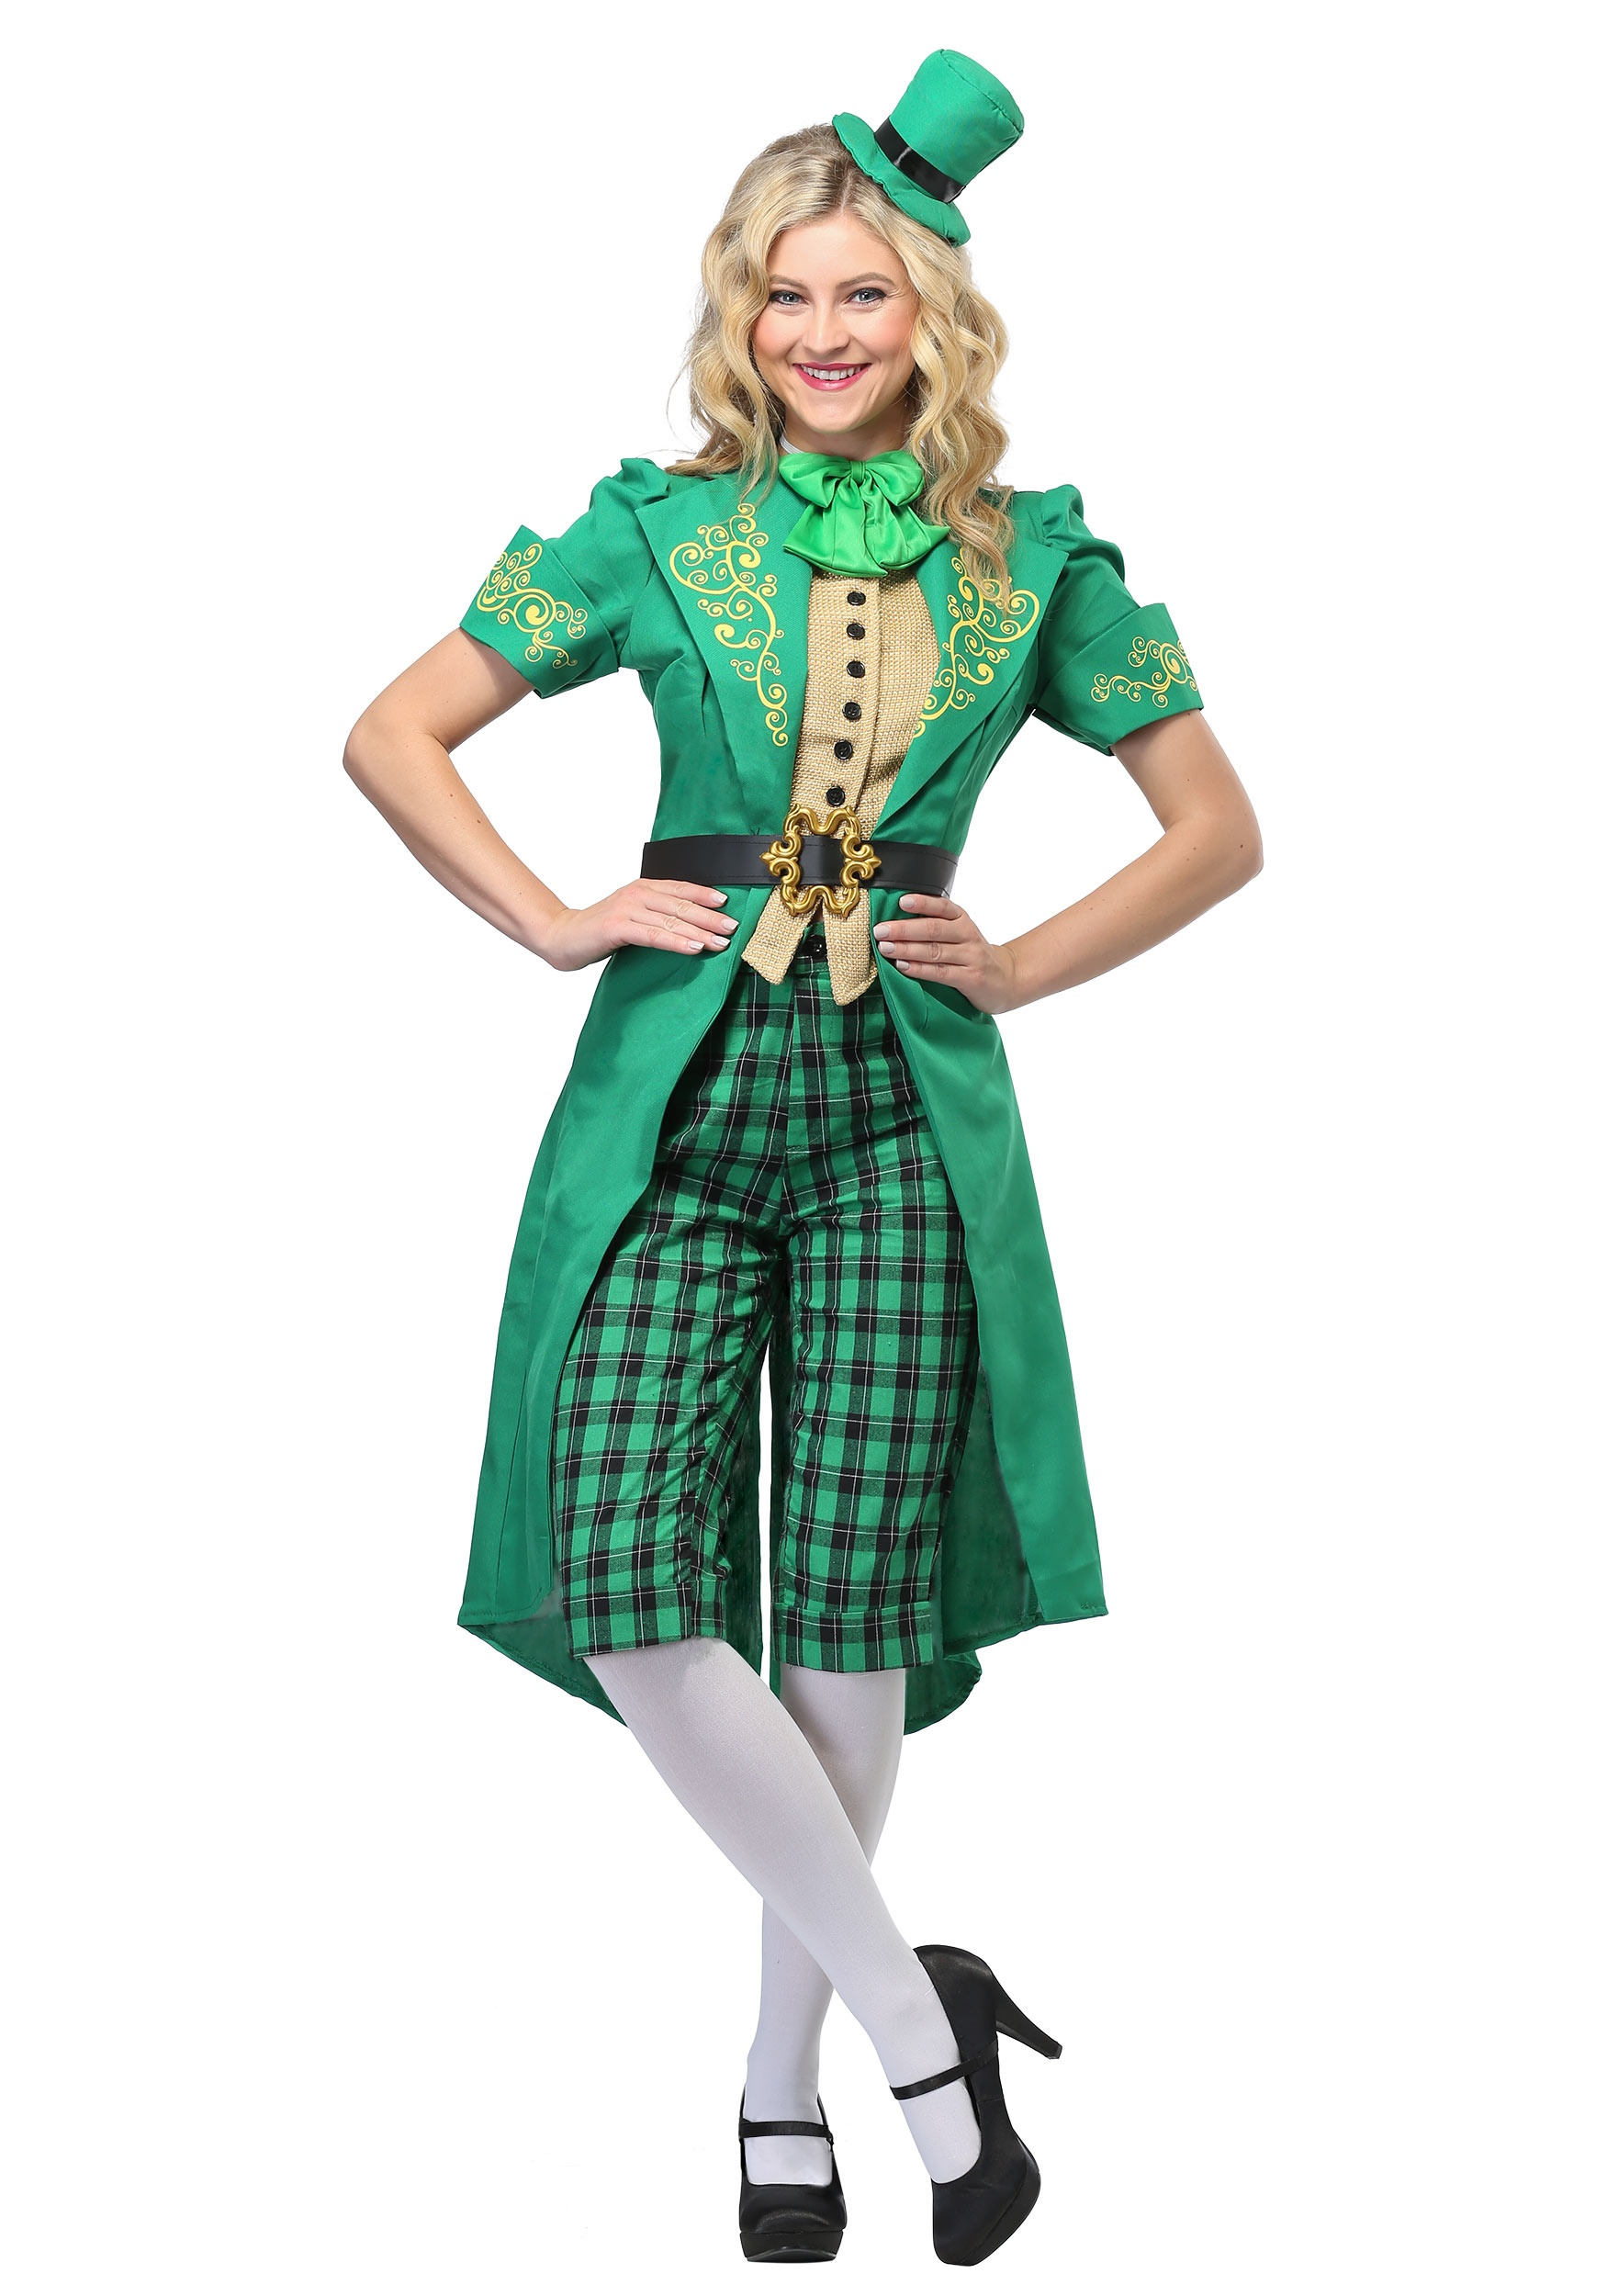 Charming Leprechaun Costume for a Women